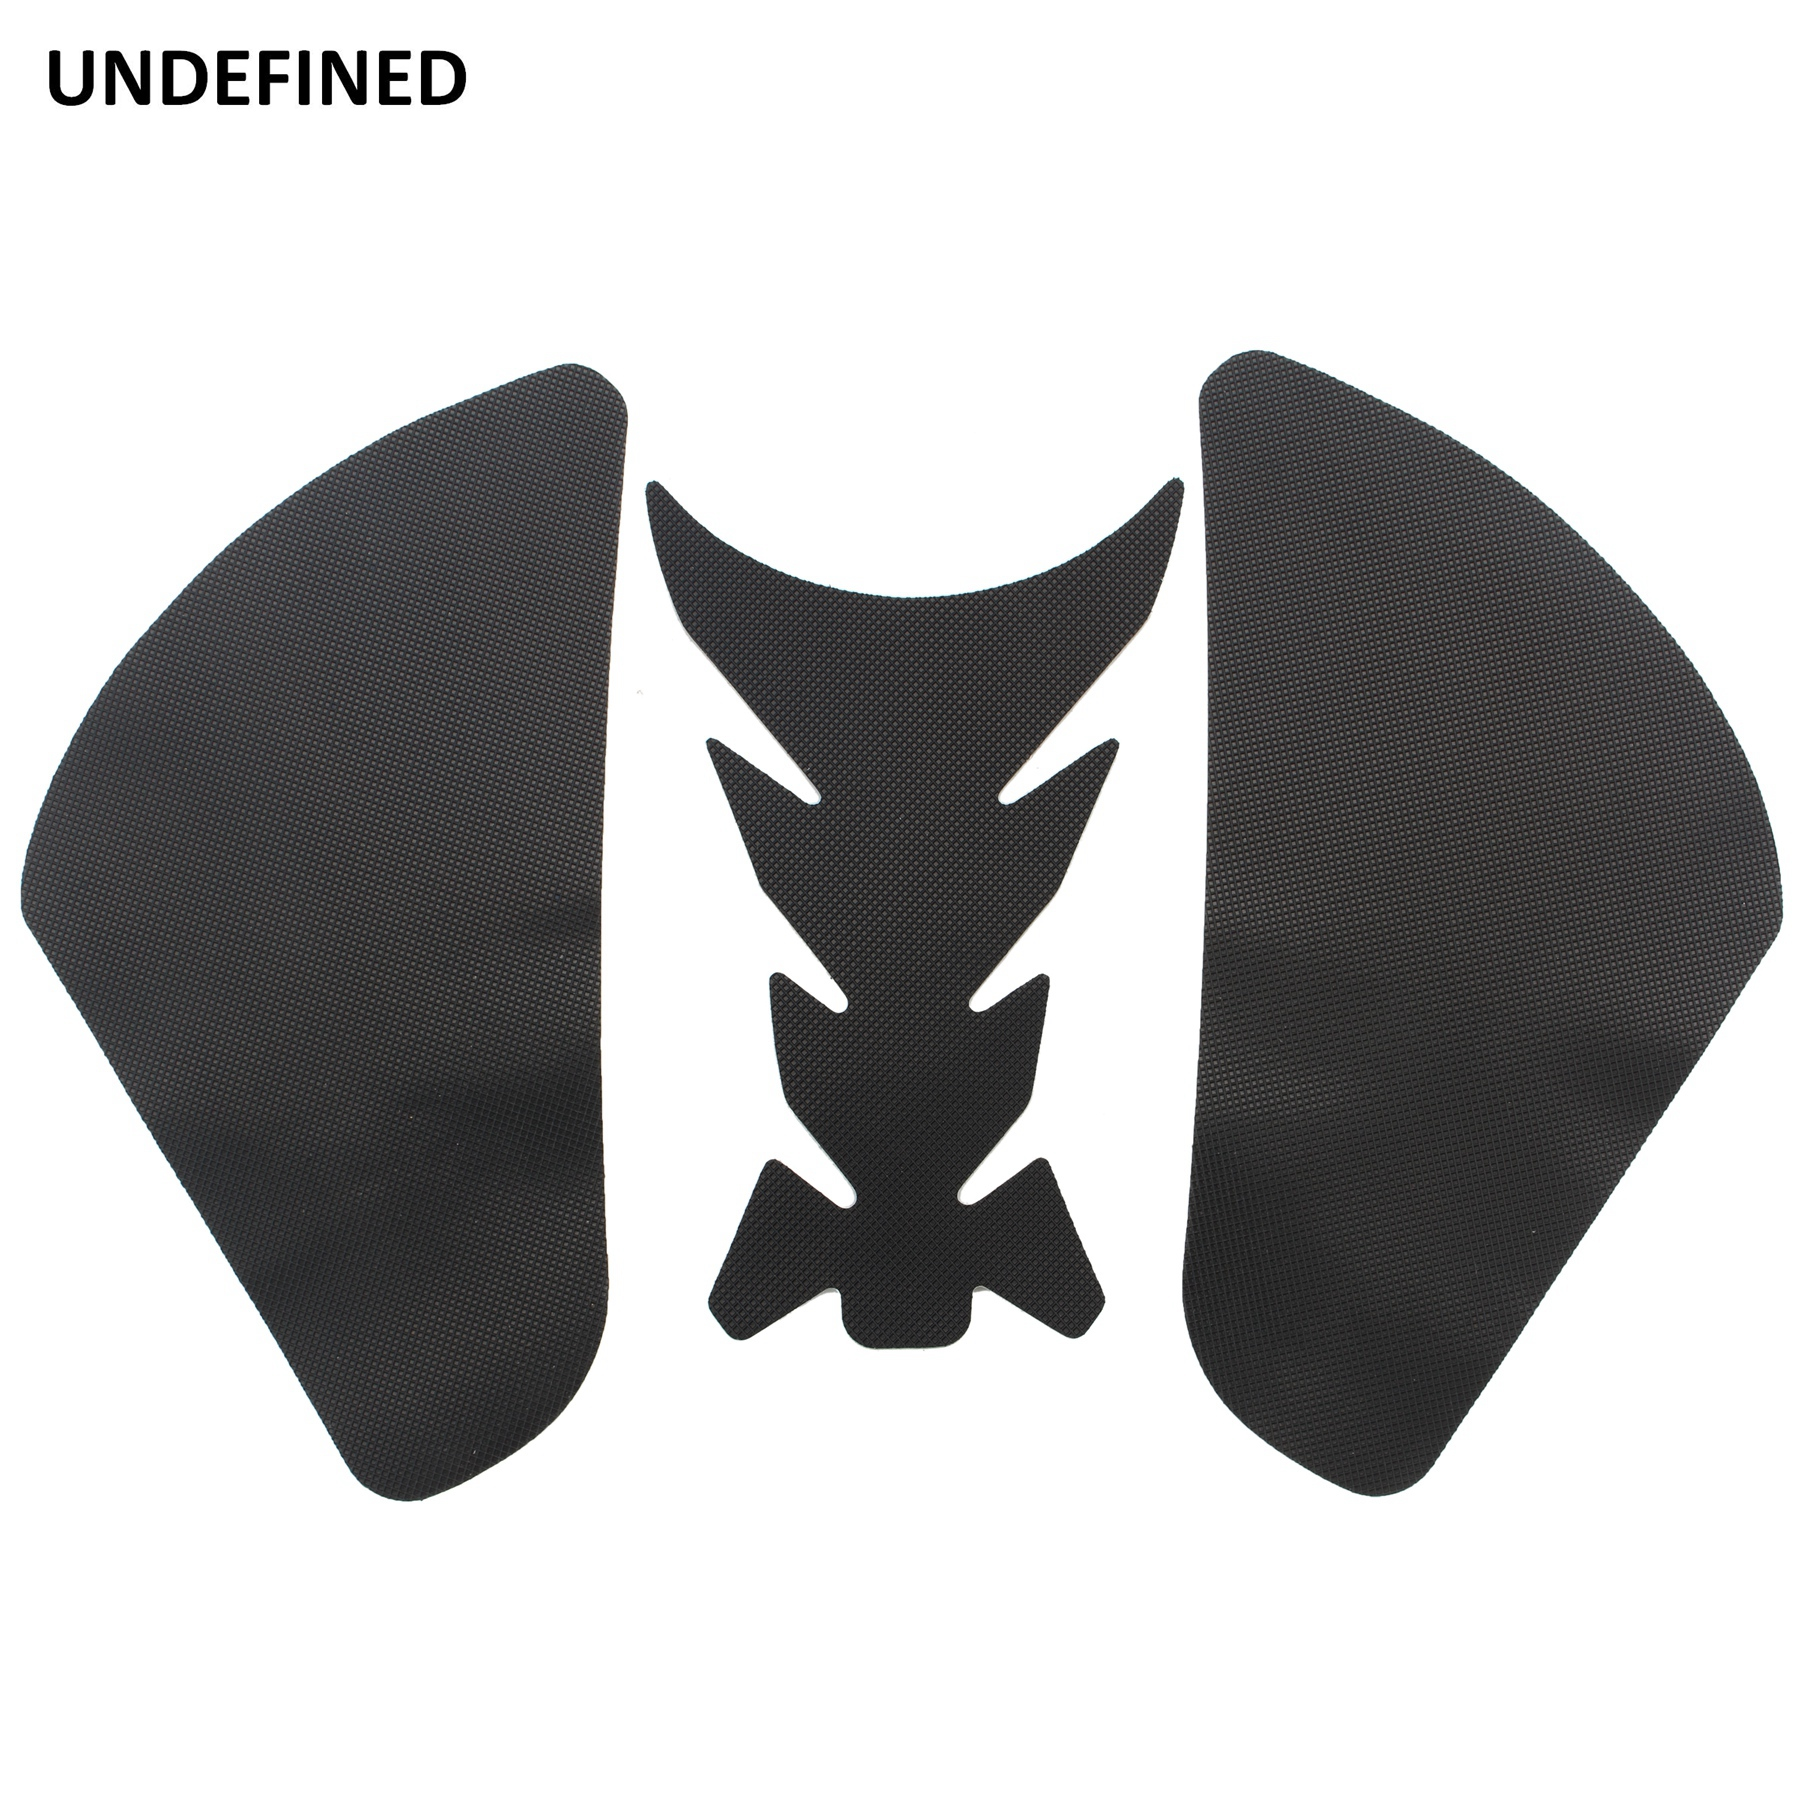 Motorcycle Anti Slip Oil Tank Pads Traction Side Gas Knee Grip Pads Protector Stickers For Honda CB1300 CB 1300 2006 2007 - 2015